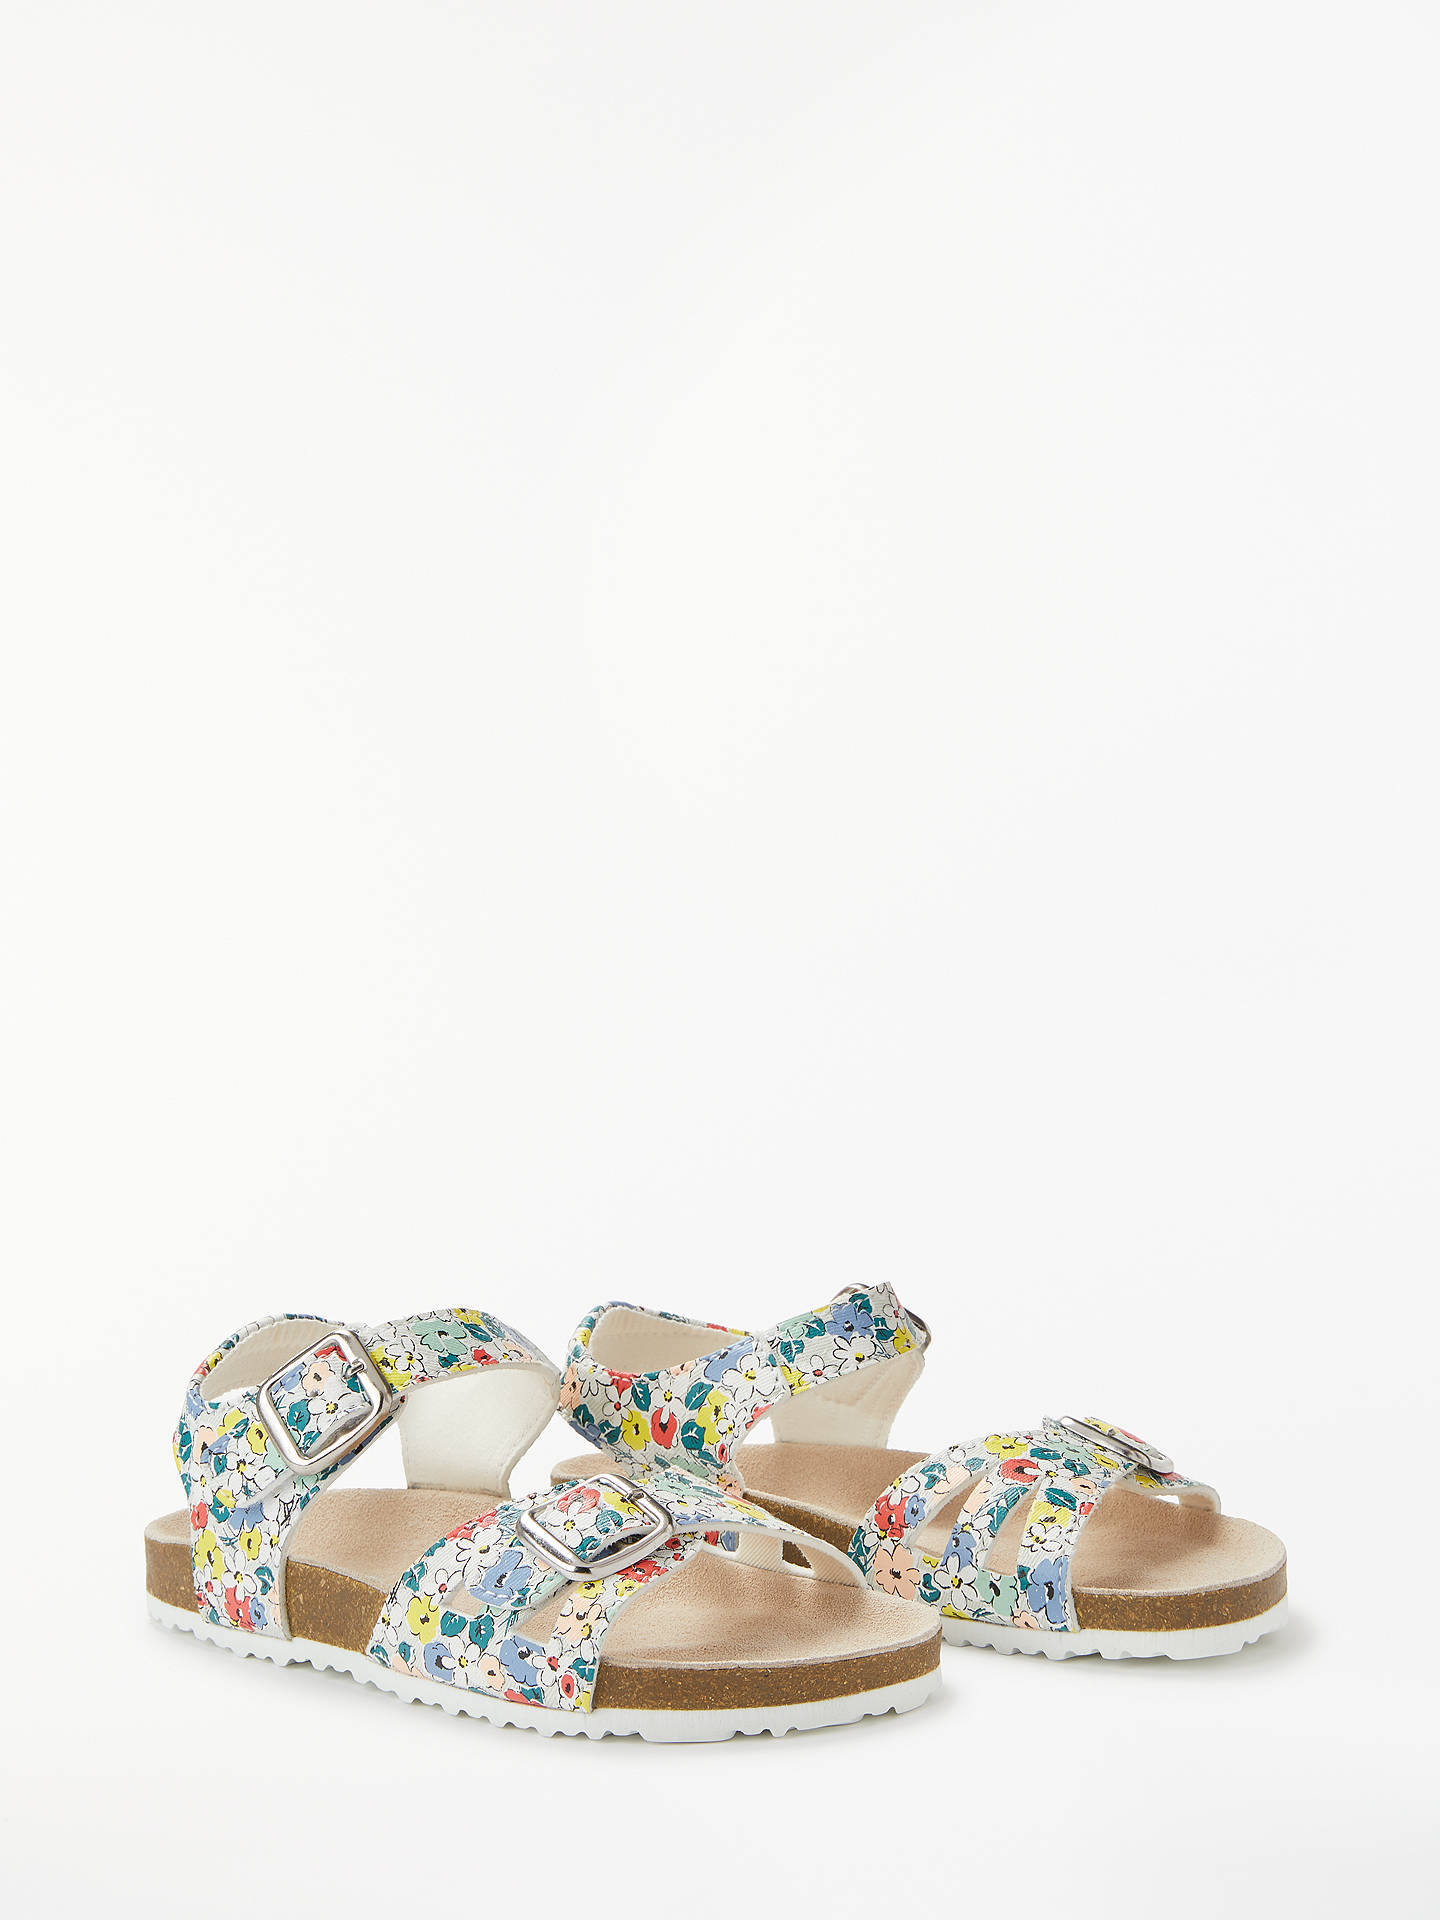 BuyJohn Lewis & Partners Children's Ava Floral Buckle Sandals, Multi, 6 Jnr Online at johnlewis.com